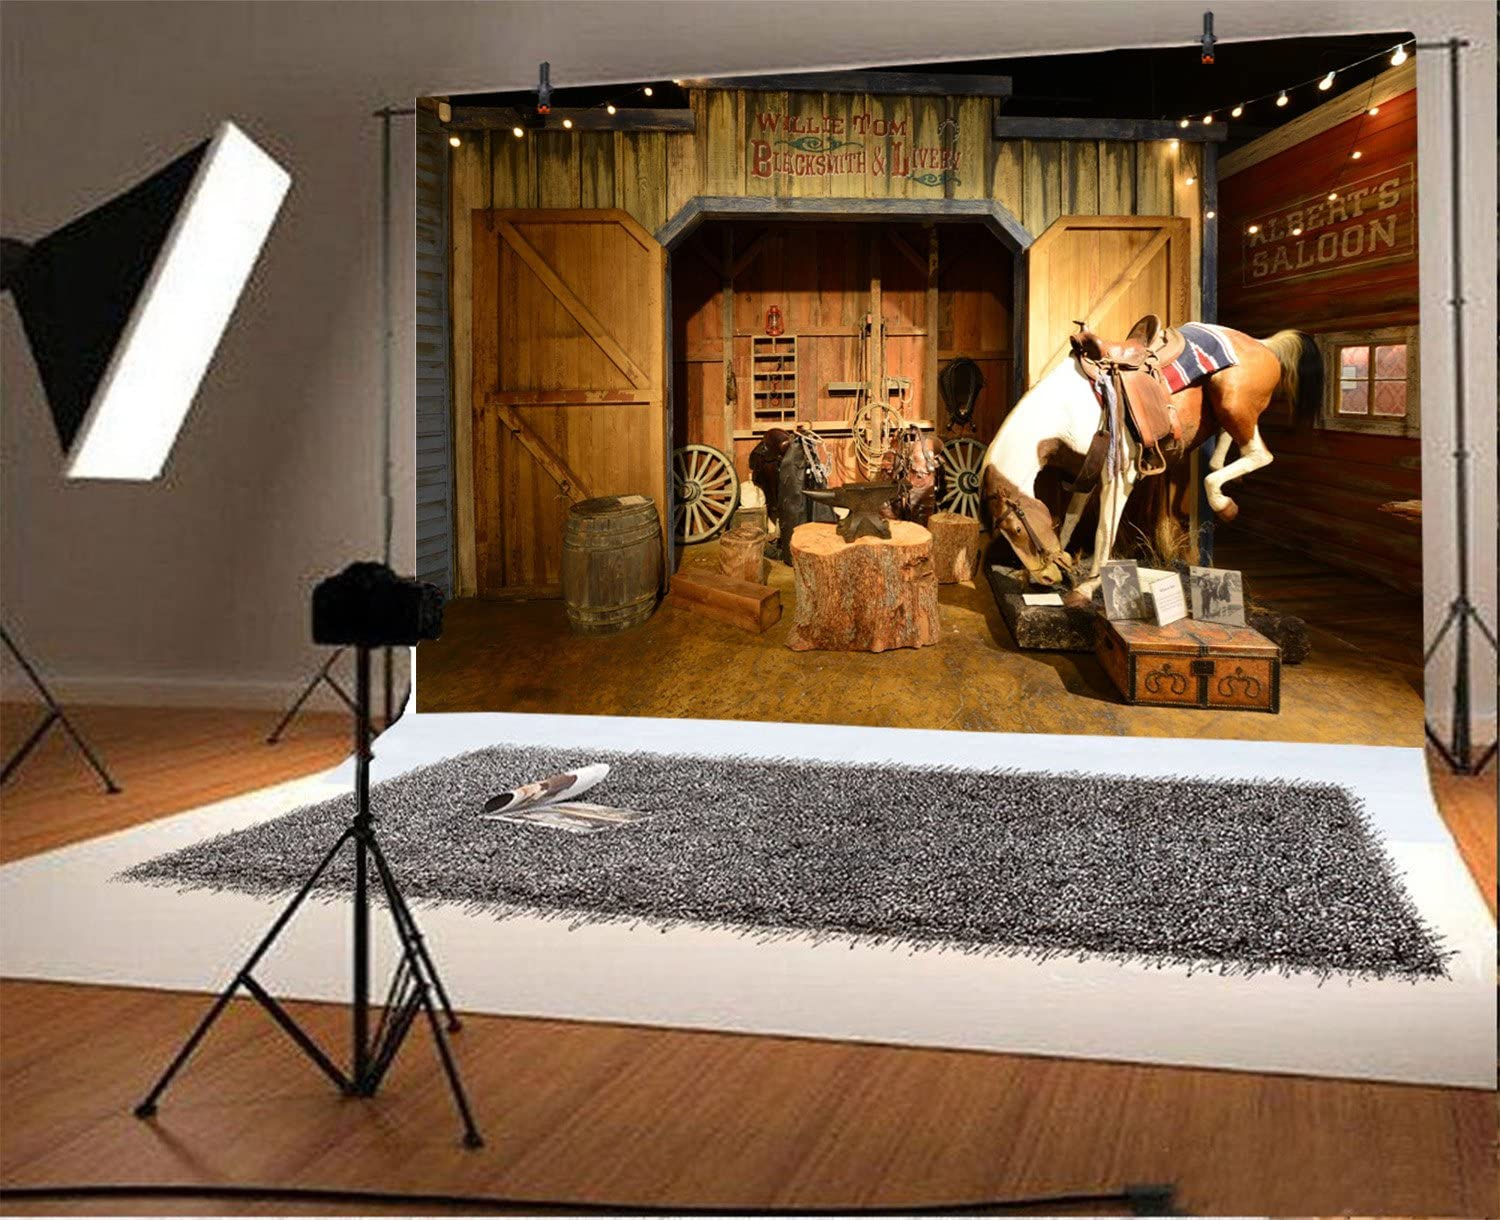 Yeele 10x8ft Wild West Backdrop for Photography Old Western Cowboy Saloon Saddle Background Party Decoration Banner Kids Man Children Boy Photo Booth Shoot Vinyl Studio Props